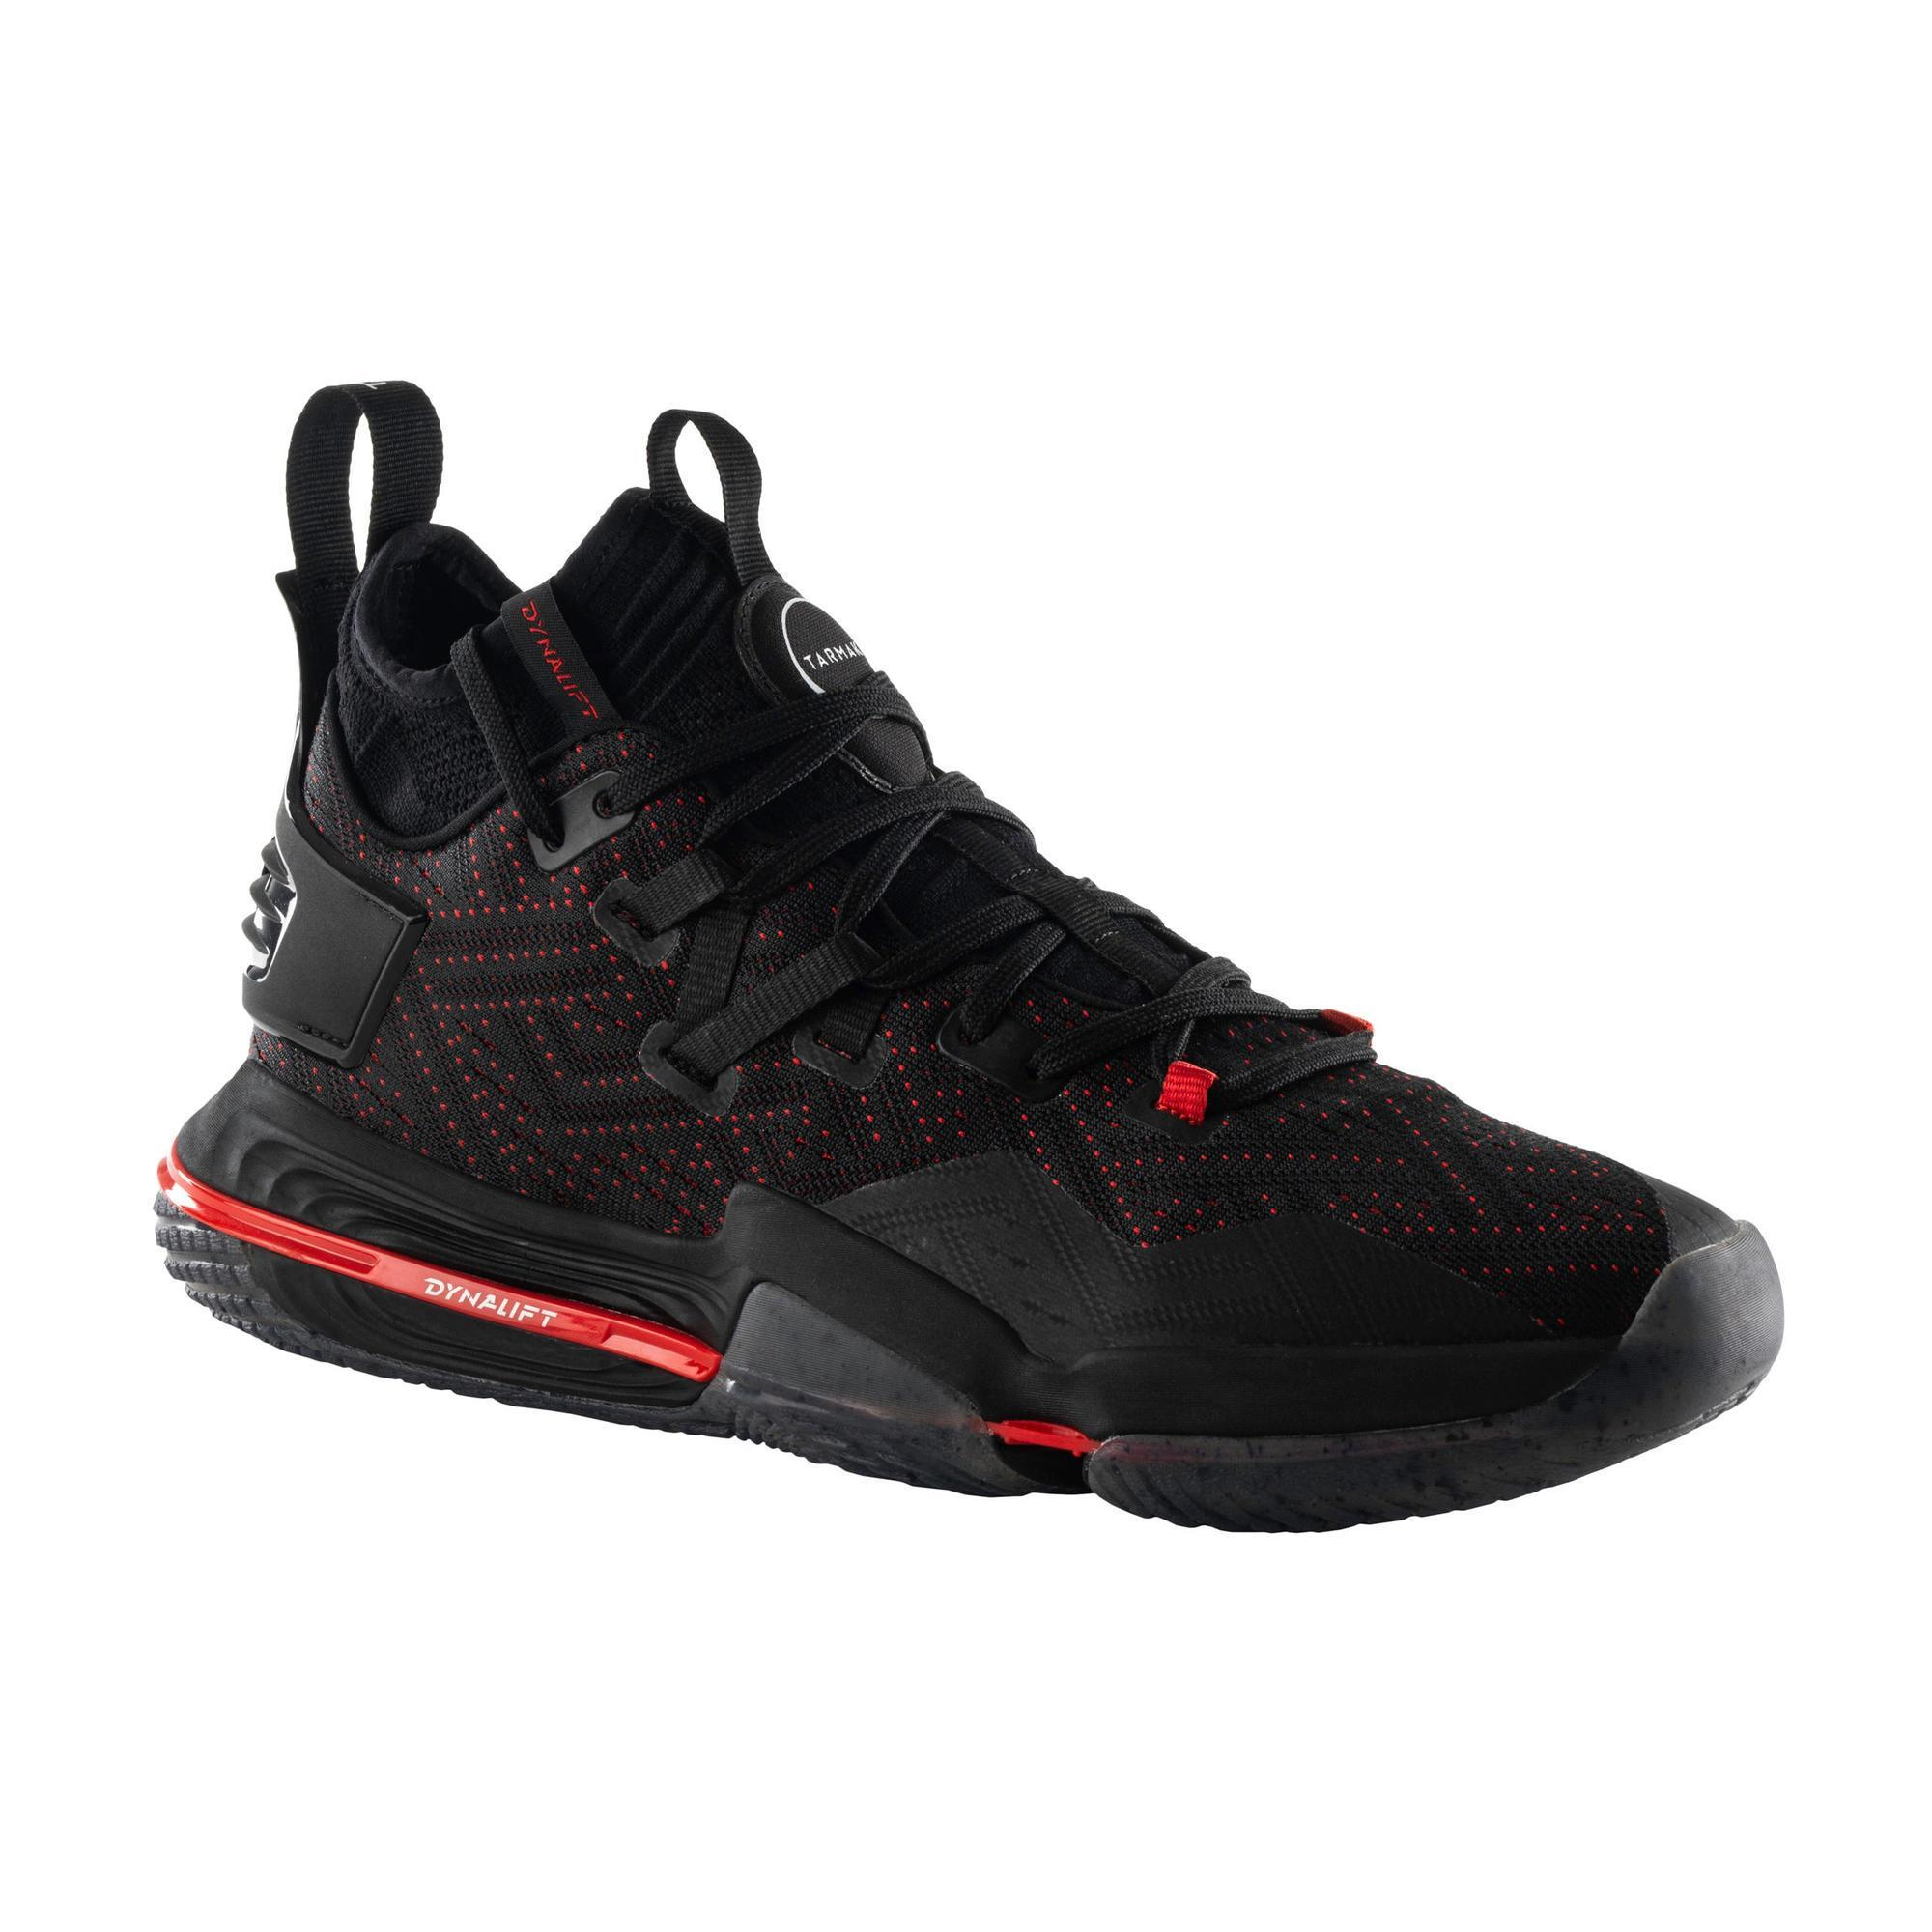 taille 40 bf84c 04791 Chaussures de basketball homme | Chaussures de basket homme ...